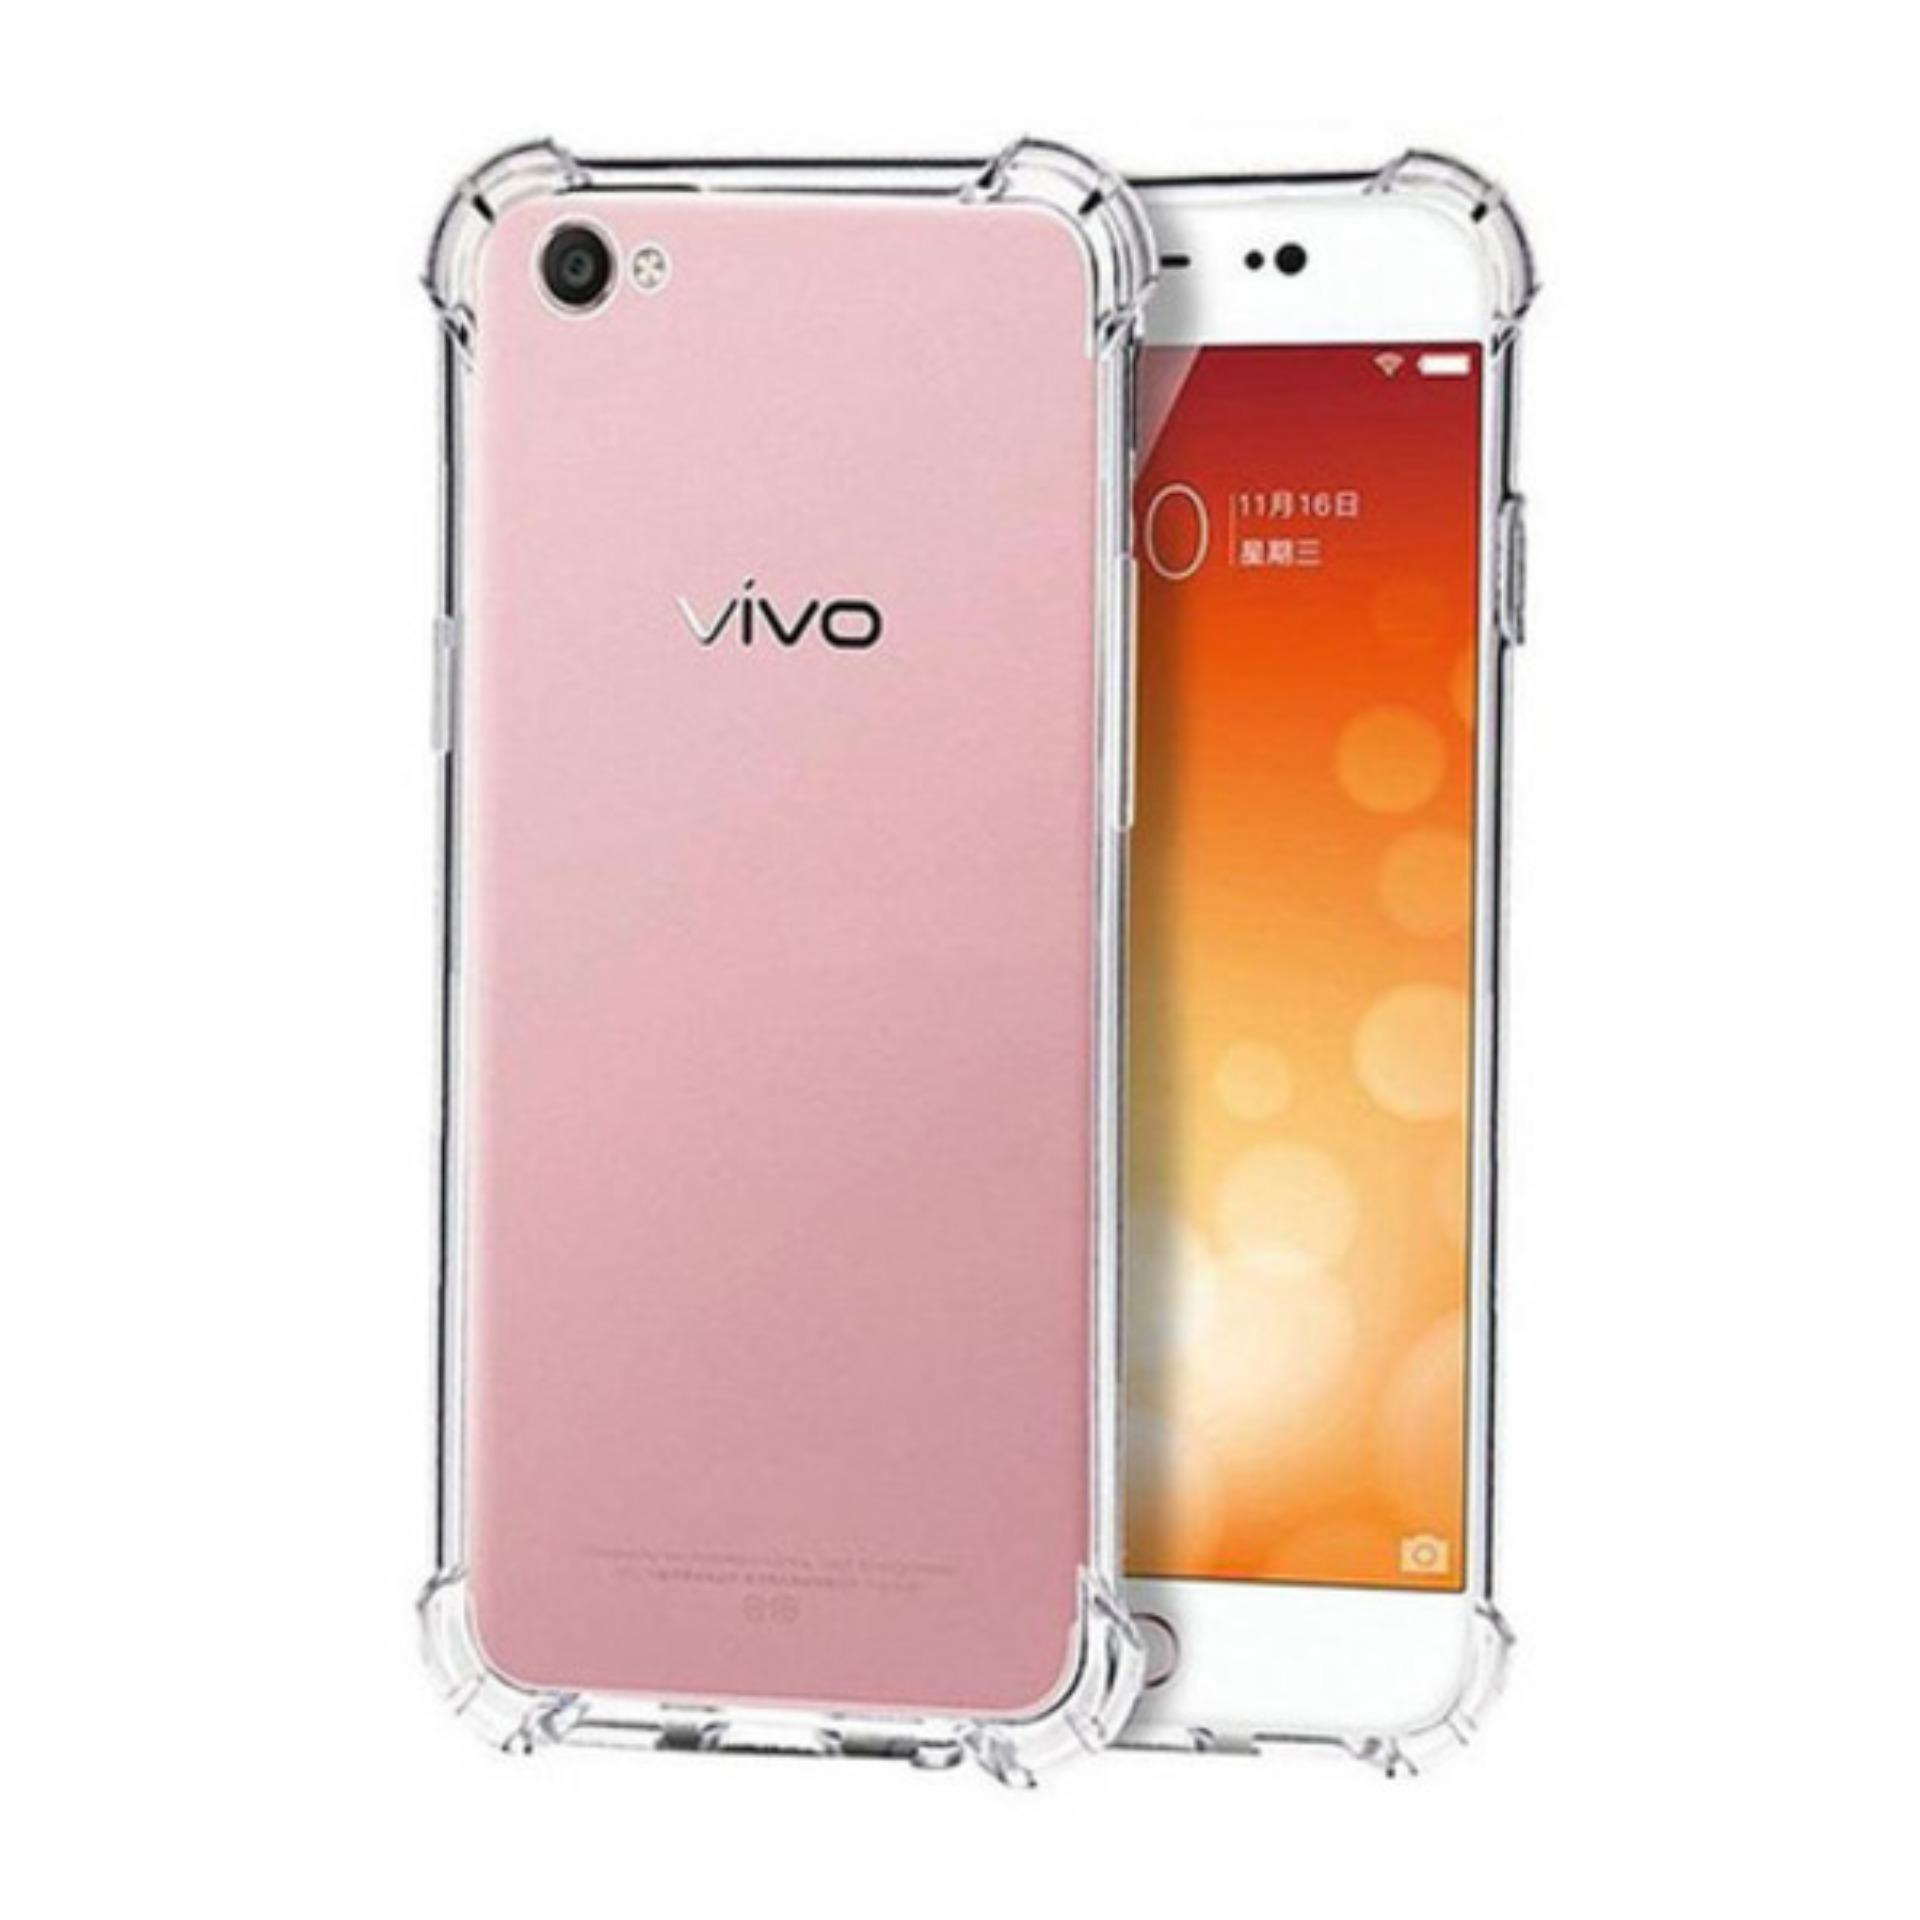 LOLLYPOP Softcase Anti Crack Vivo Y65 / Y66 Clear Transparan Bening Anti Shock ShockProof TPU Jelly Silicone Backcase Back Cover